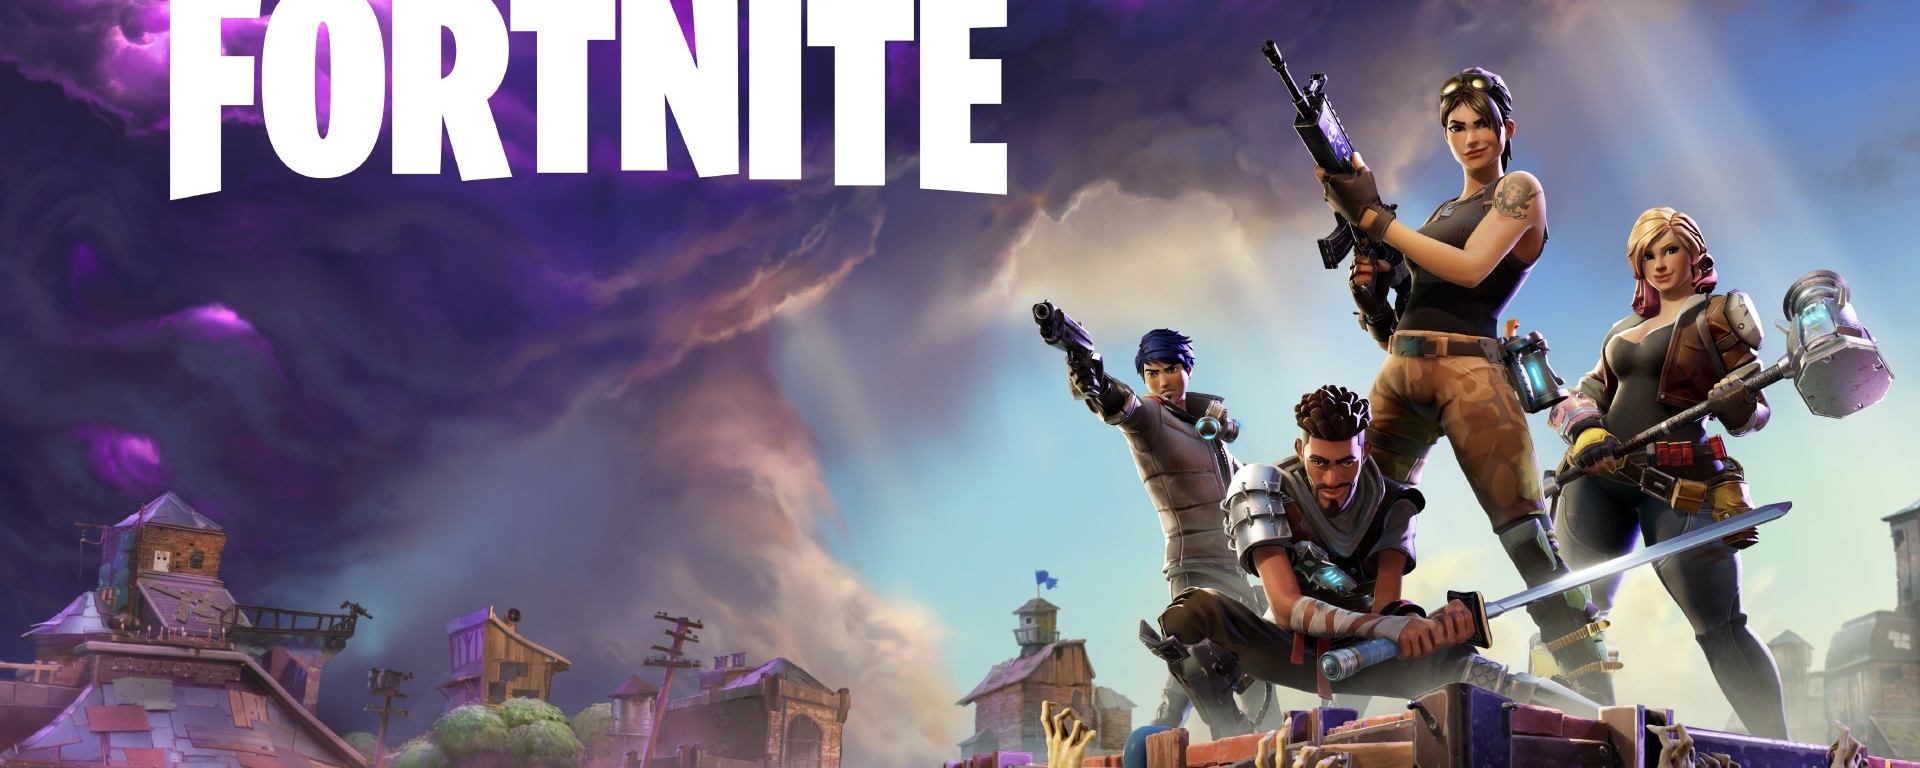 epic announces fortnite world cup with over 100 million in prize pool money - fortnite world cup qualifiers money